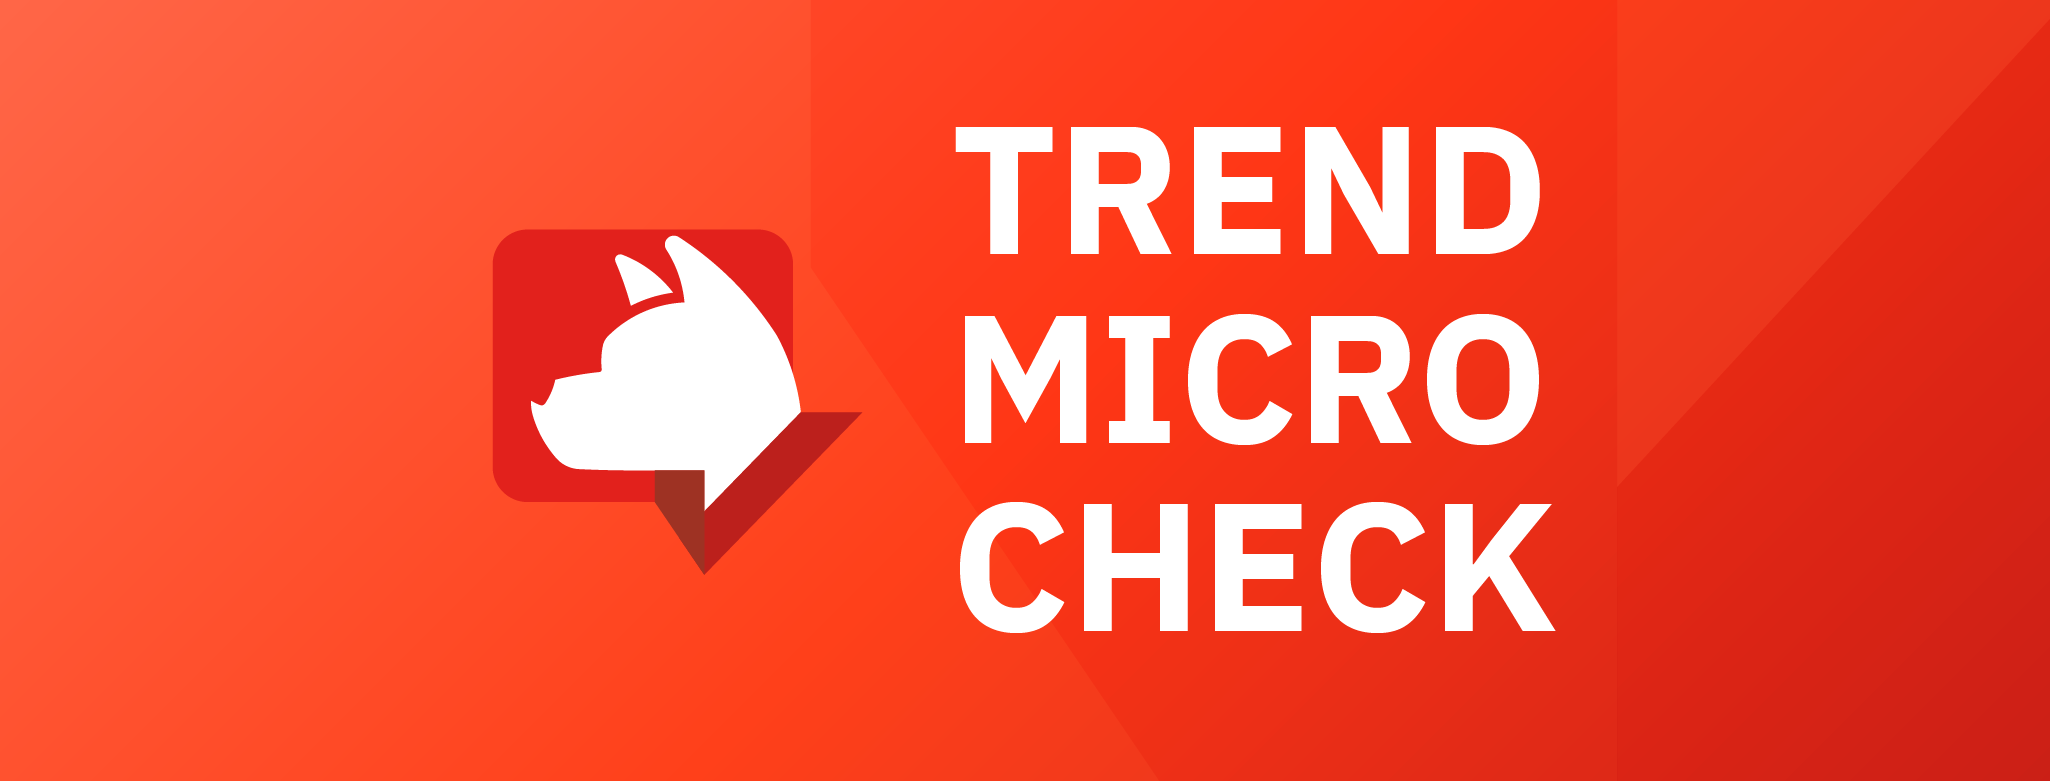 Trend Micro Check - Your 24/7 cybersecurity companion is at your service now!